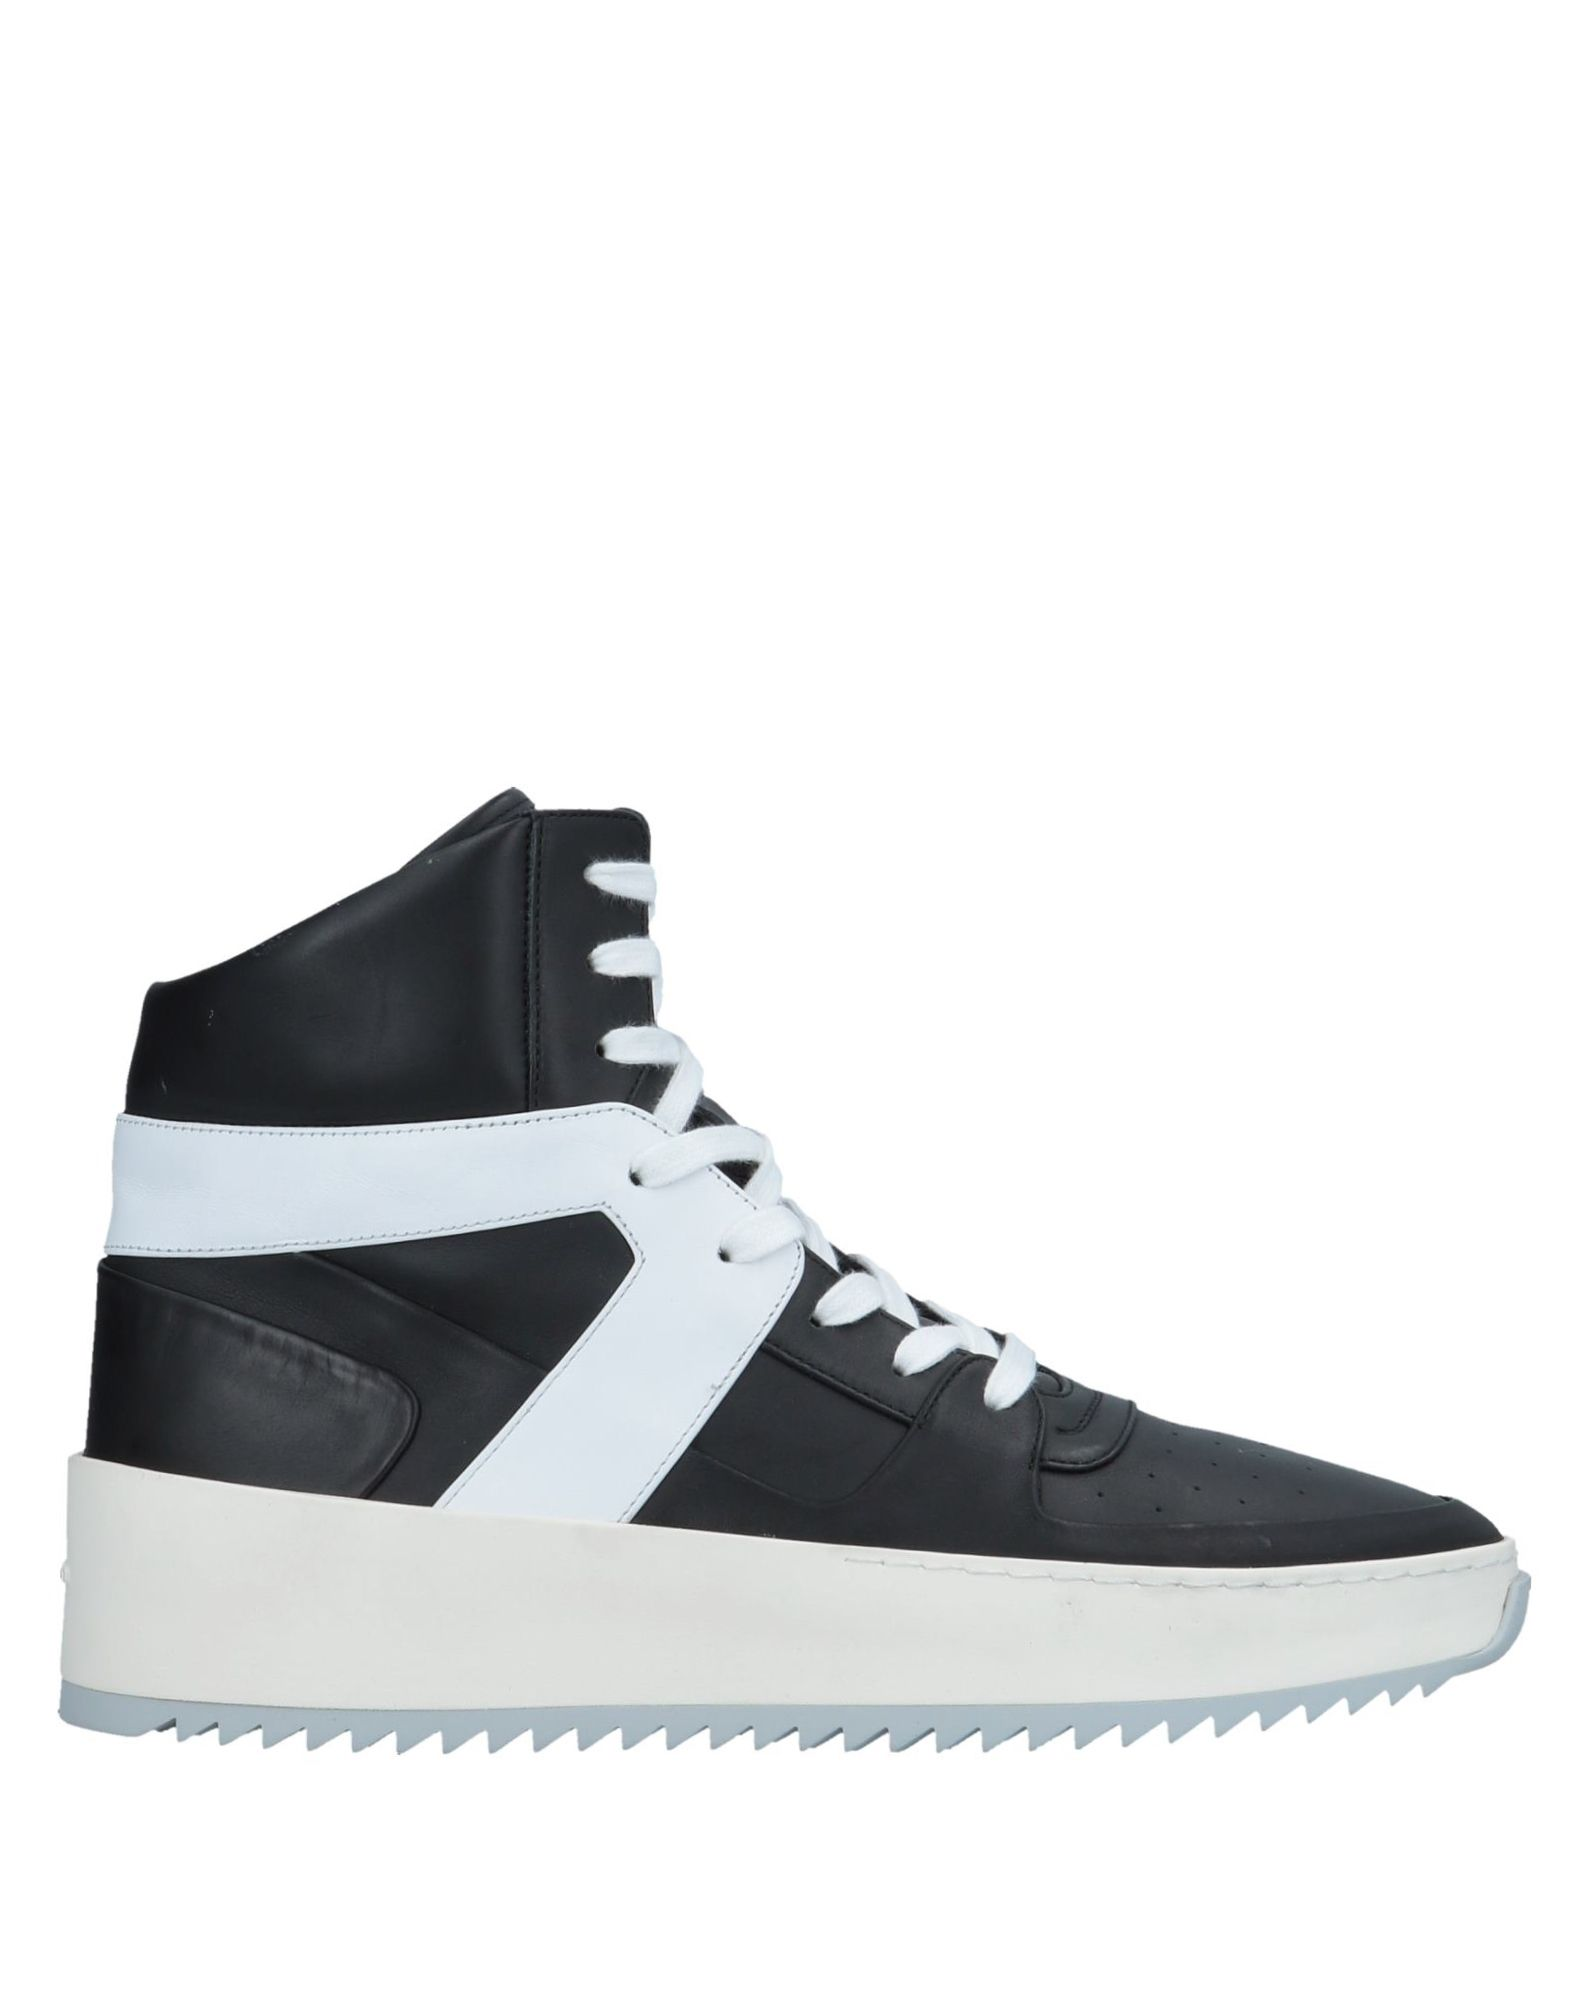 Sneakers Fear Of God Homme - Sneakers Fear Of God  Noir Chaussures casual sauvages